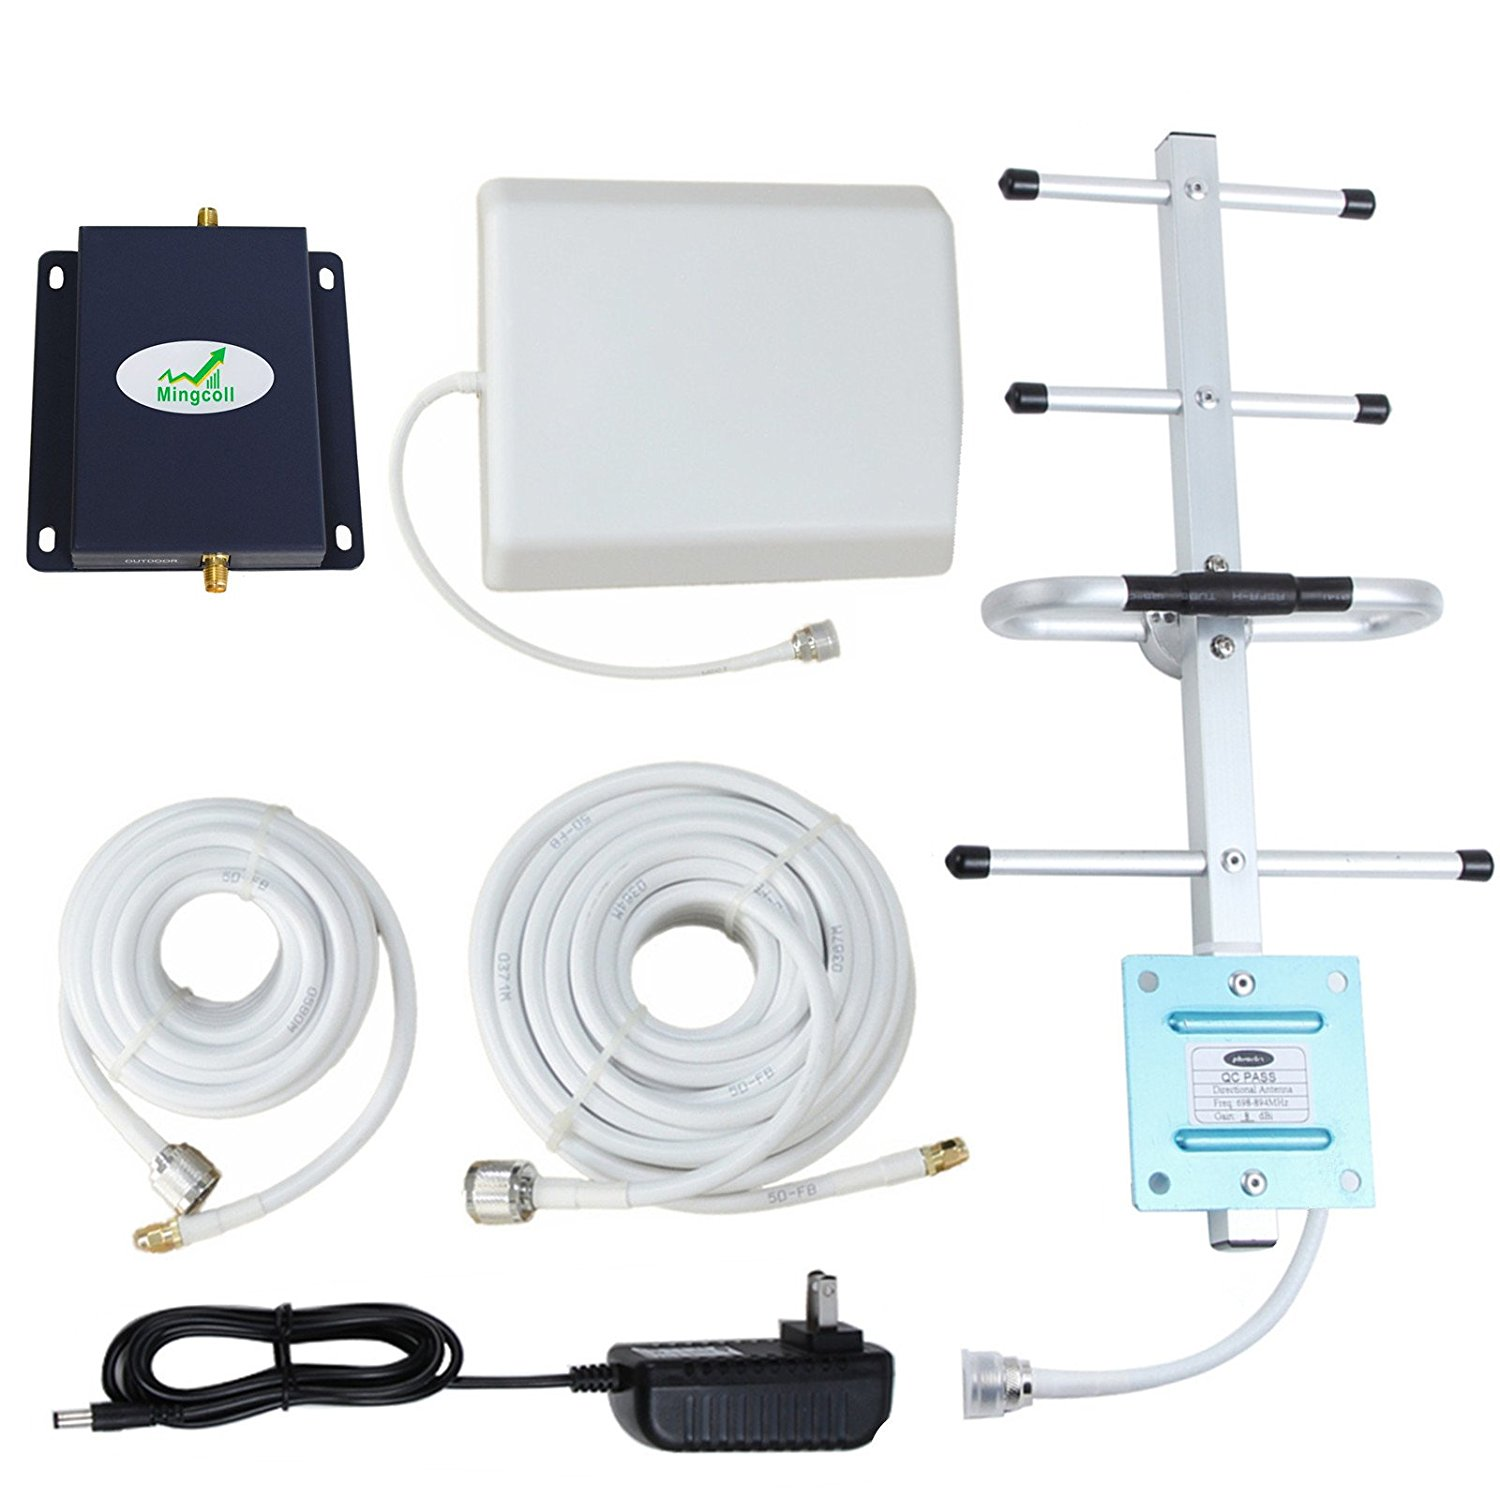 Mingcoll Verizon Cell Signal Booster 700MHz Band 13 4G LTE Mobile Cell Phone Signal Booster Amplifier (BV70-7B8)